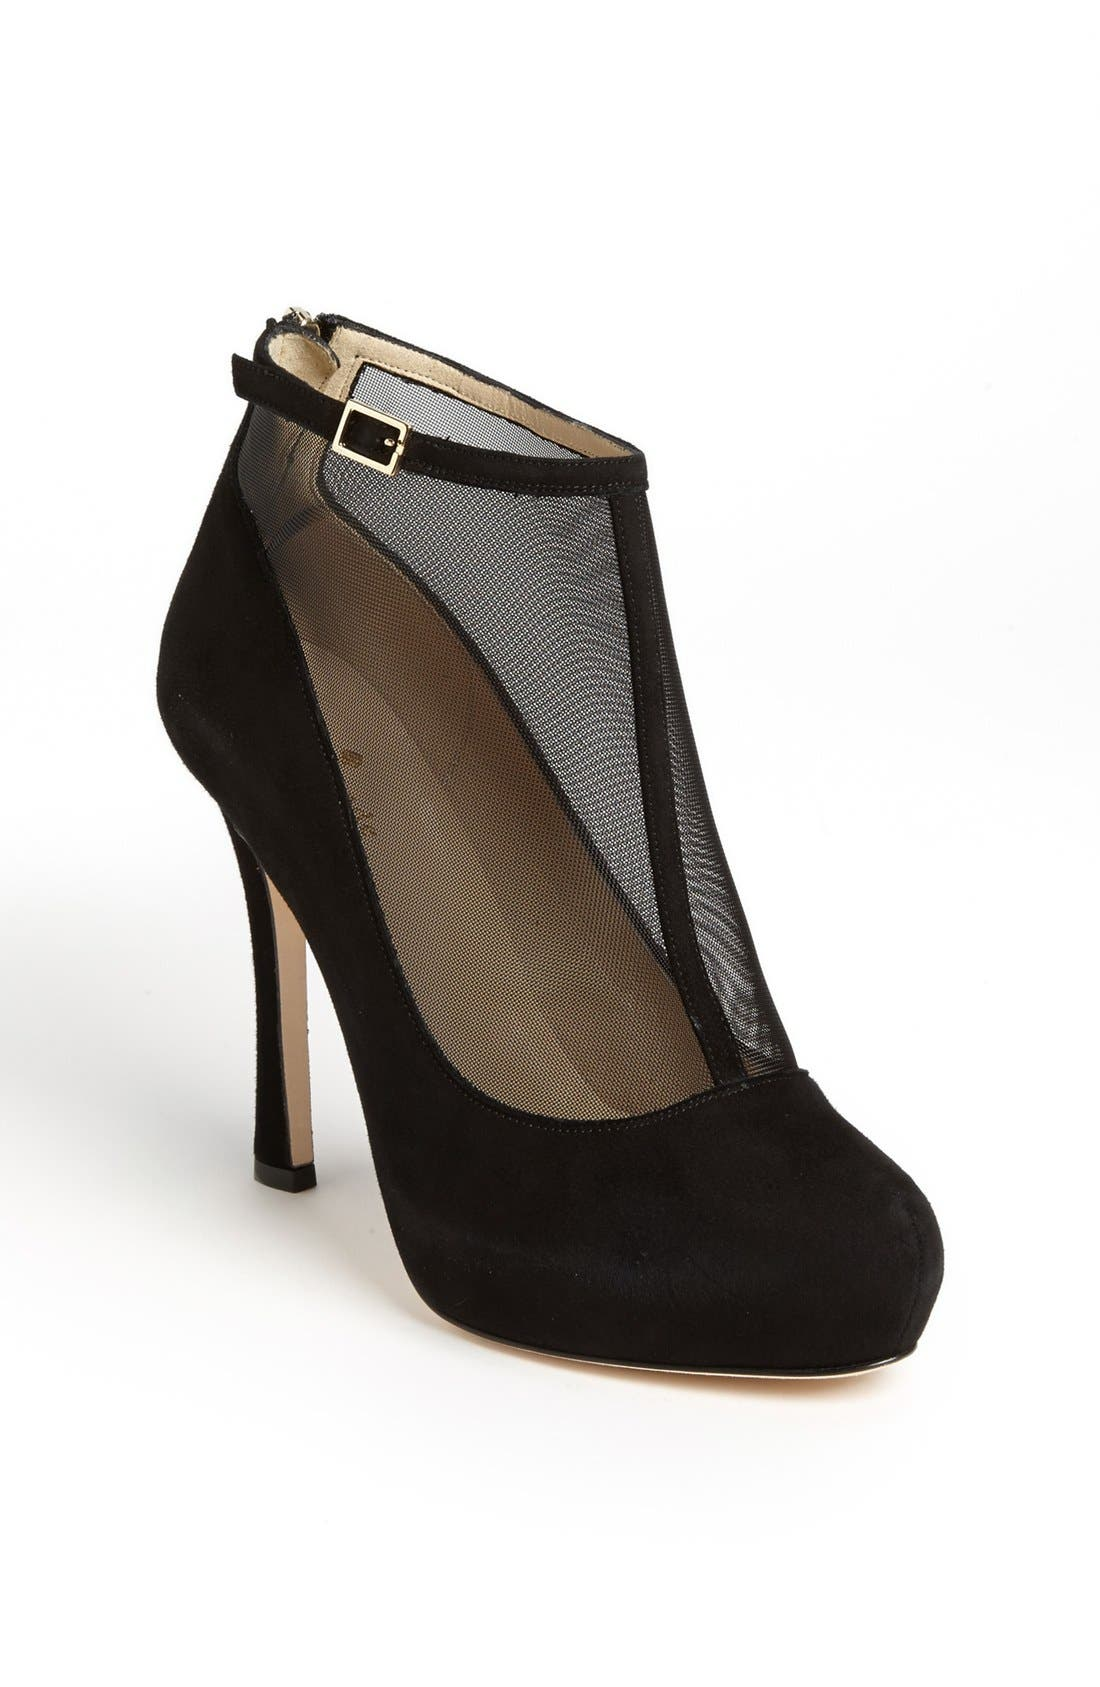 Alternate Image 1 Selected - kate spade new york 'neveah' bootie